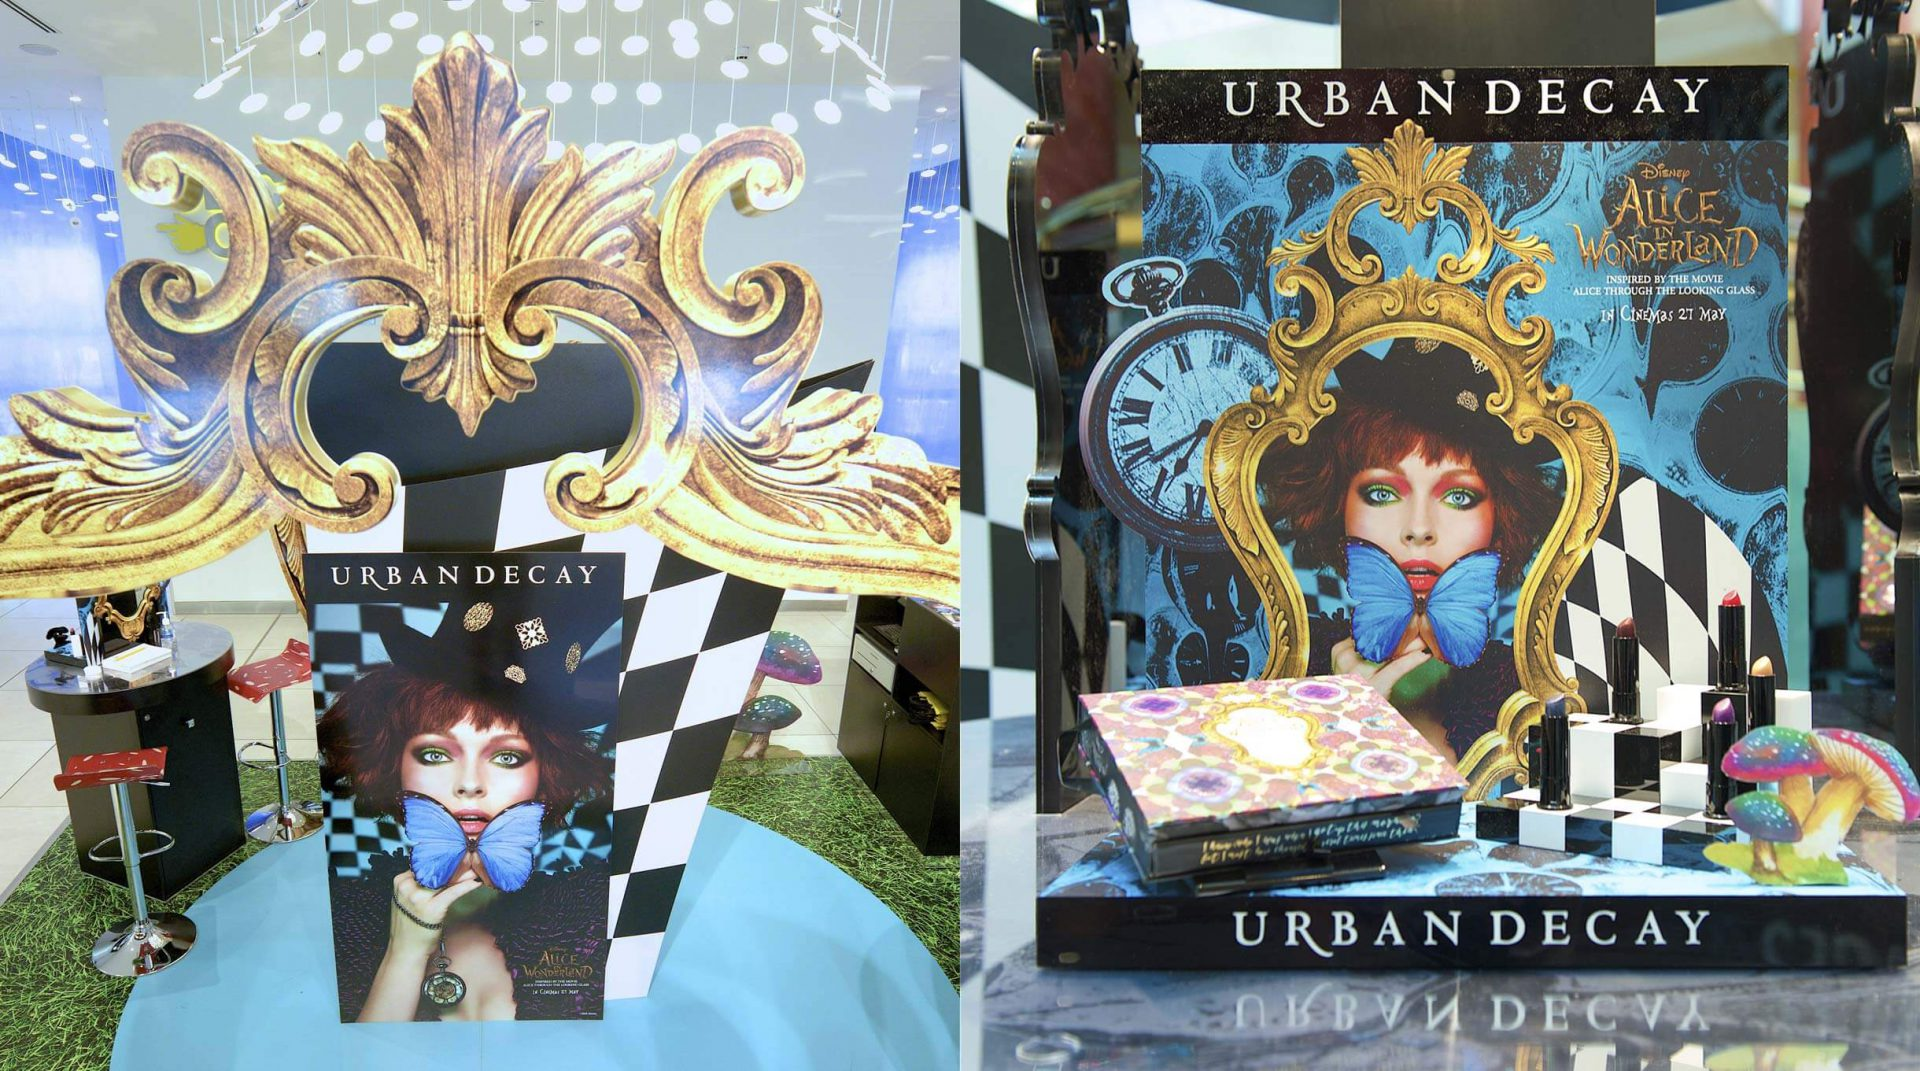 Urban Decay - Alice in Wonderland